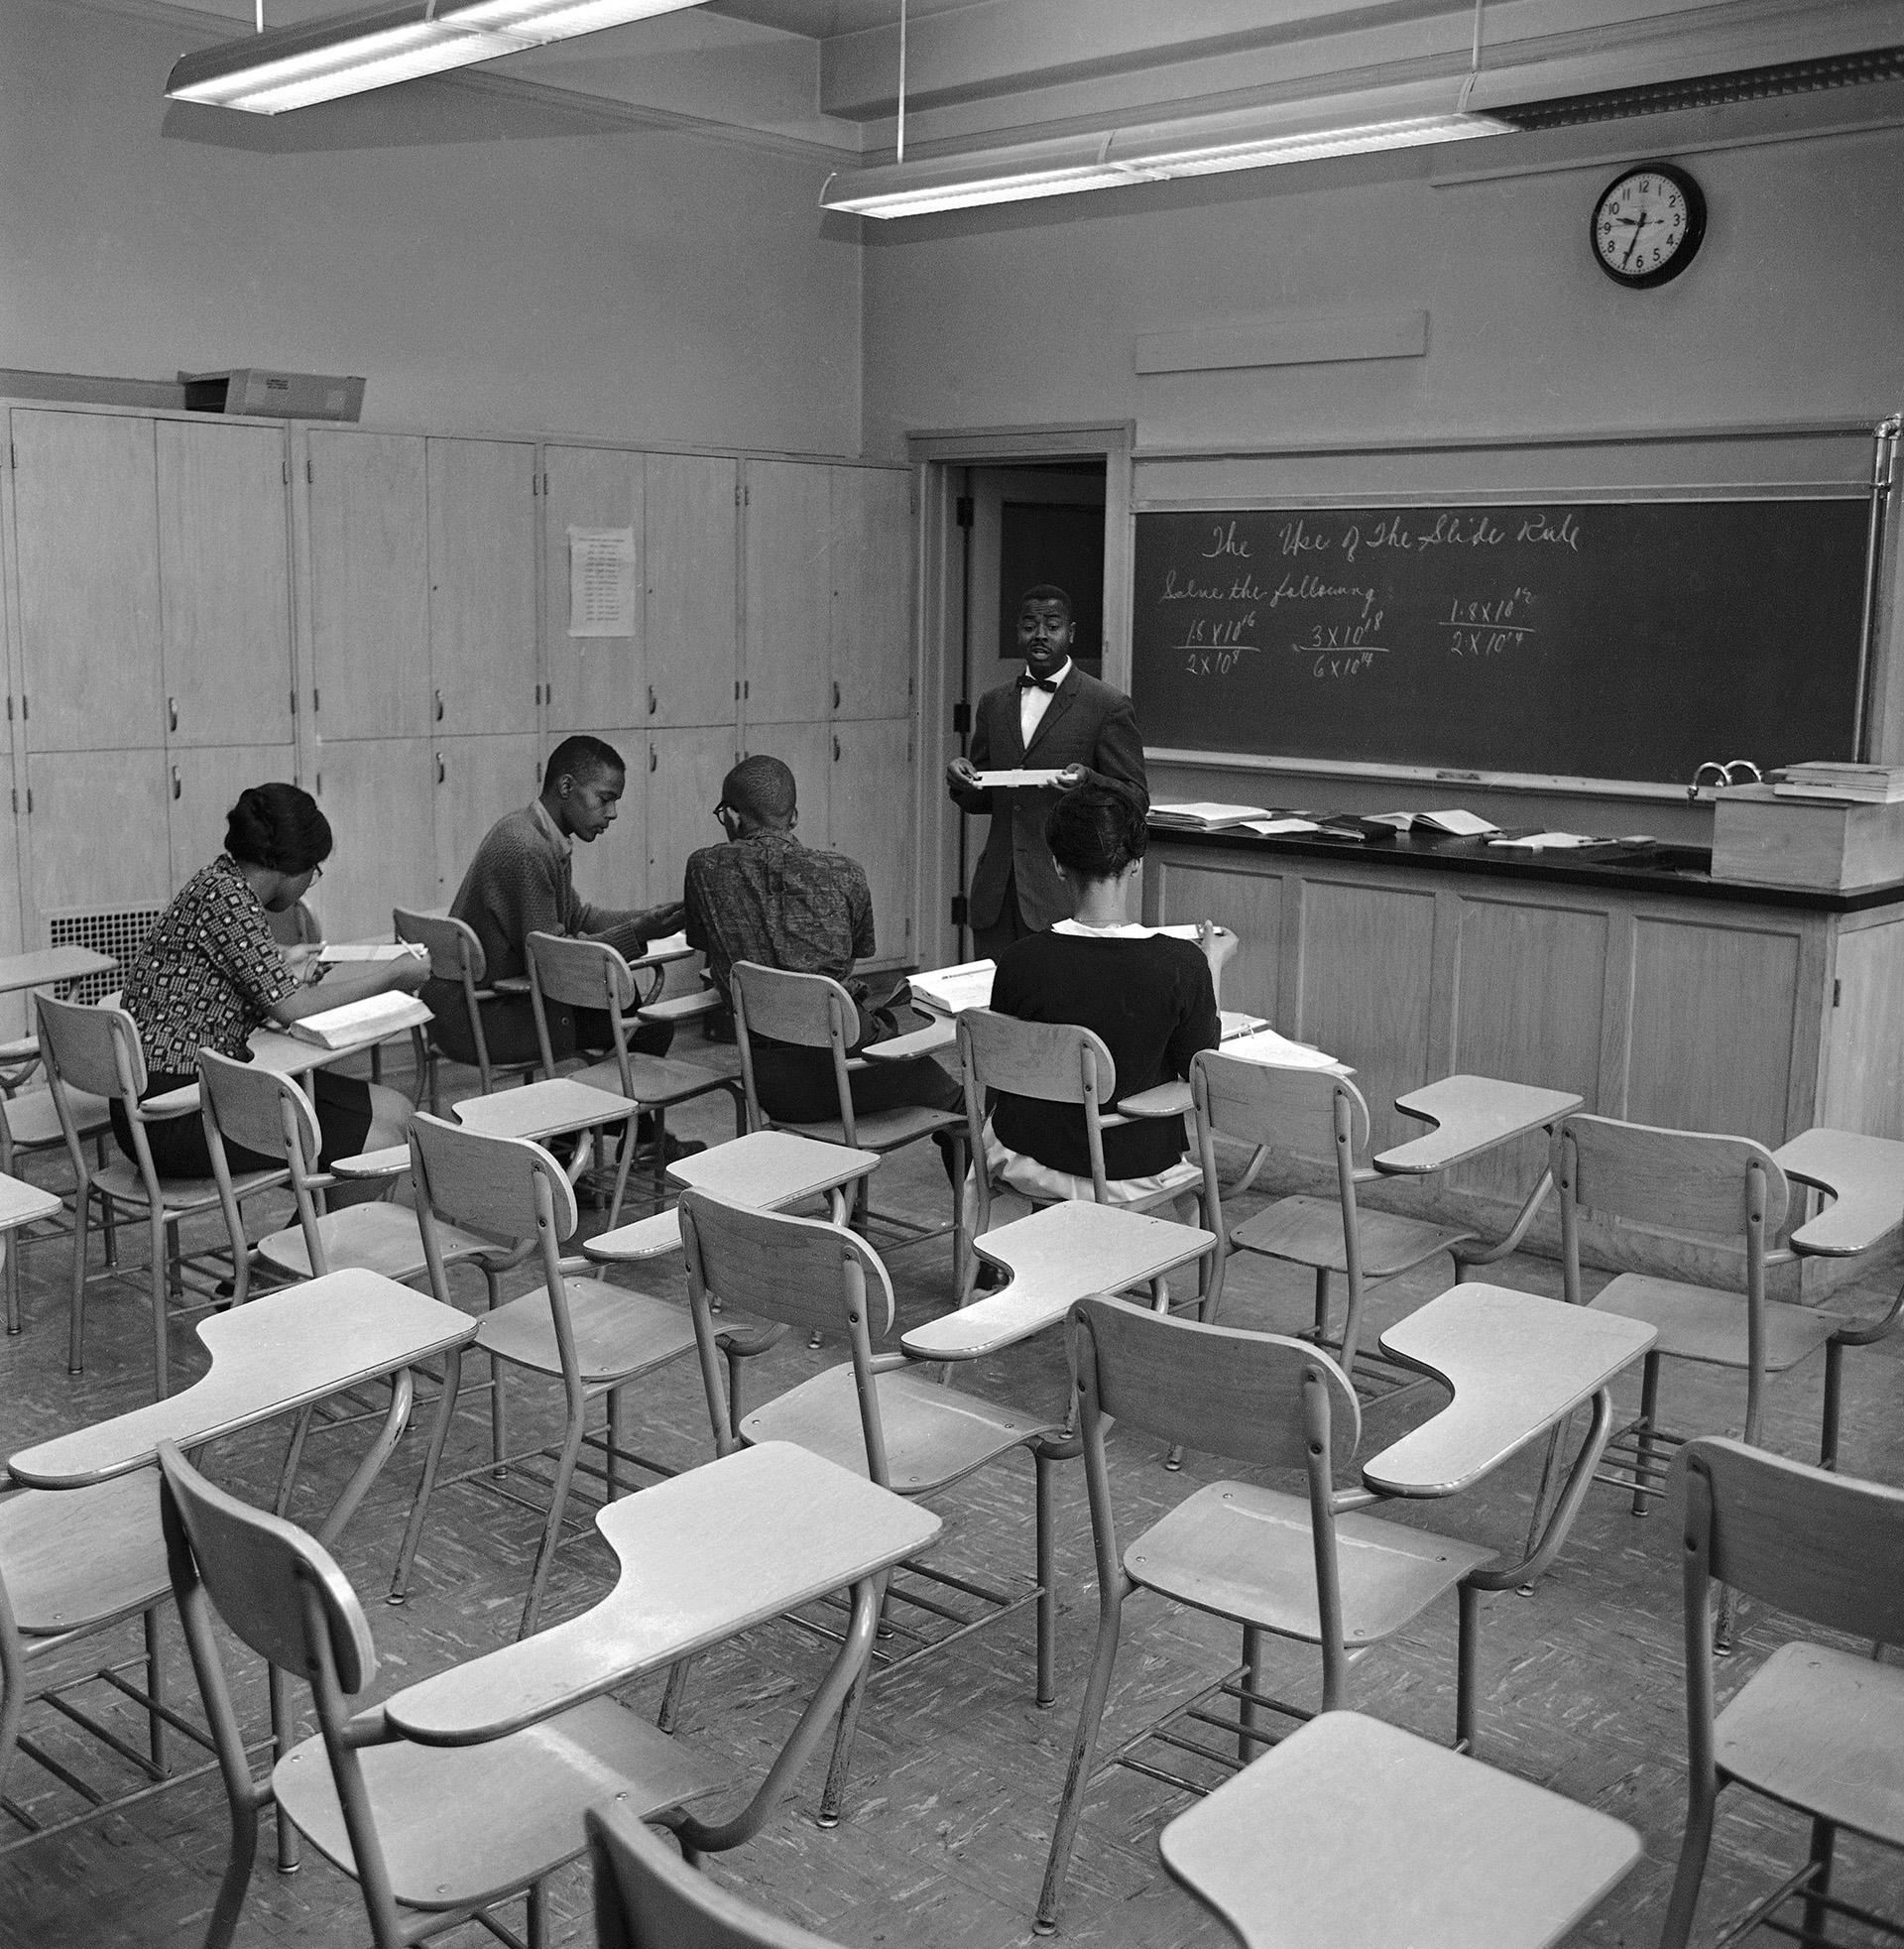 Four students, of the 38 that usually attend the class, seen studying at Englewood High School in Chicago on the day of the school boycott. (Credit: AP Photo)